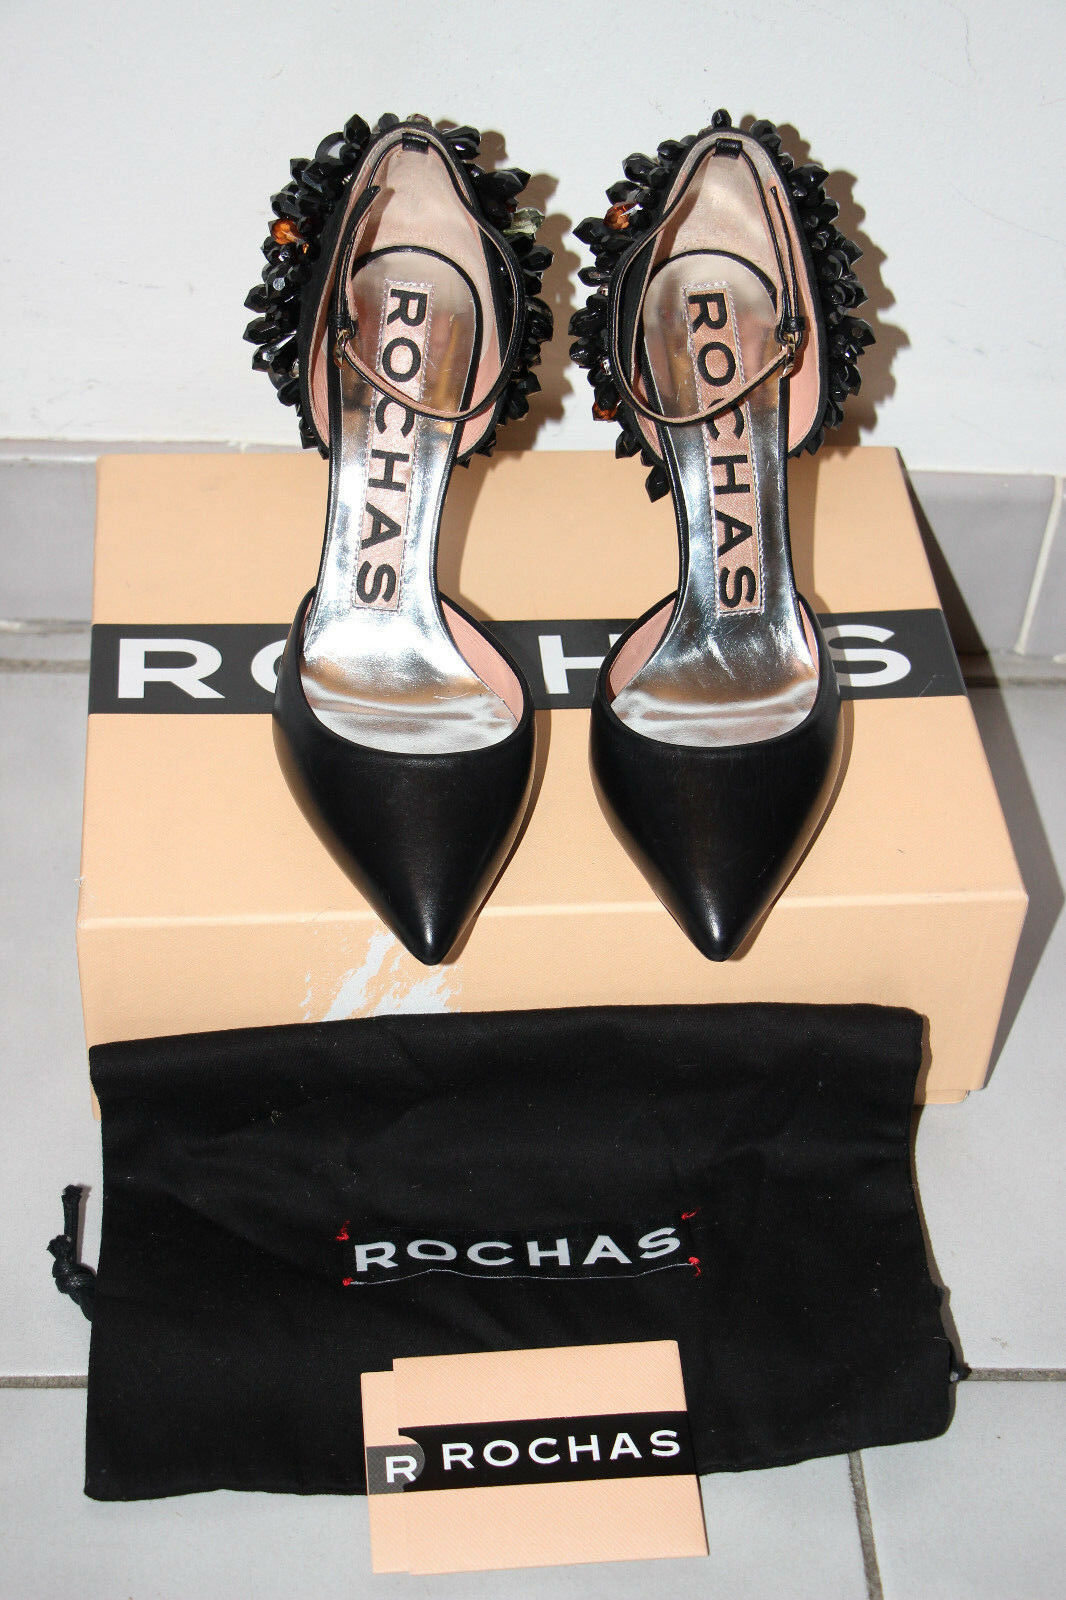 Rochas Black Crystal Embellished 'Shakes While Moving' Heels sz sz sz 6   IT 36  1985 d3417d